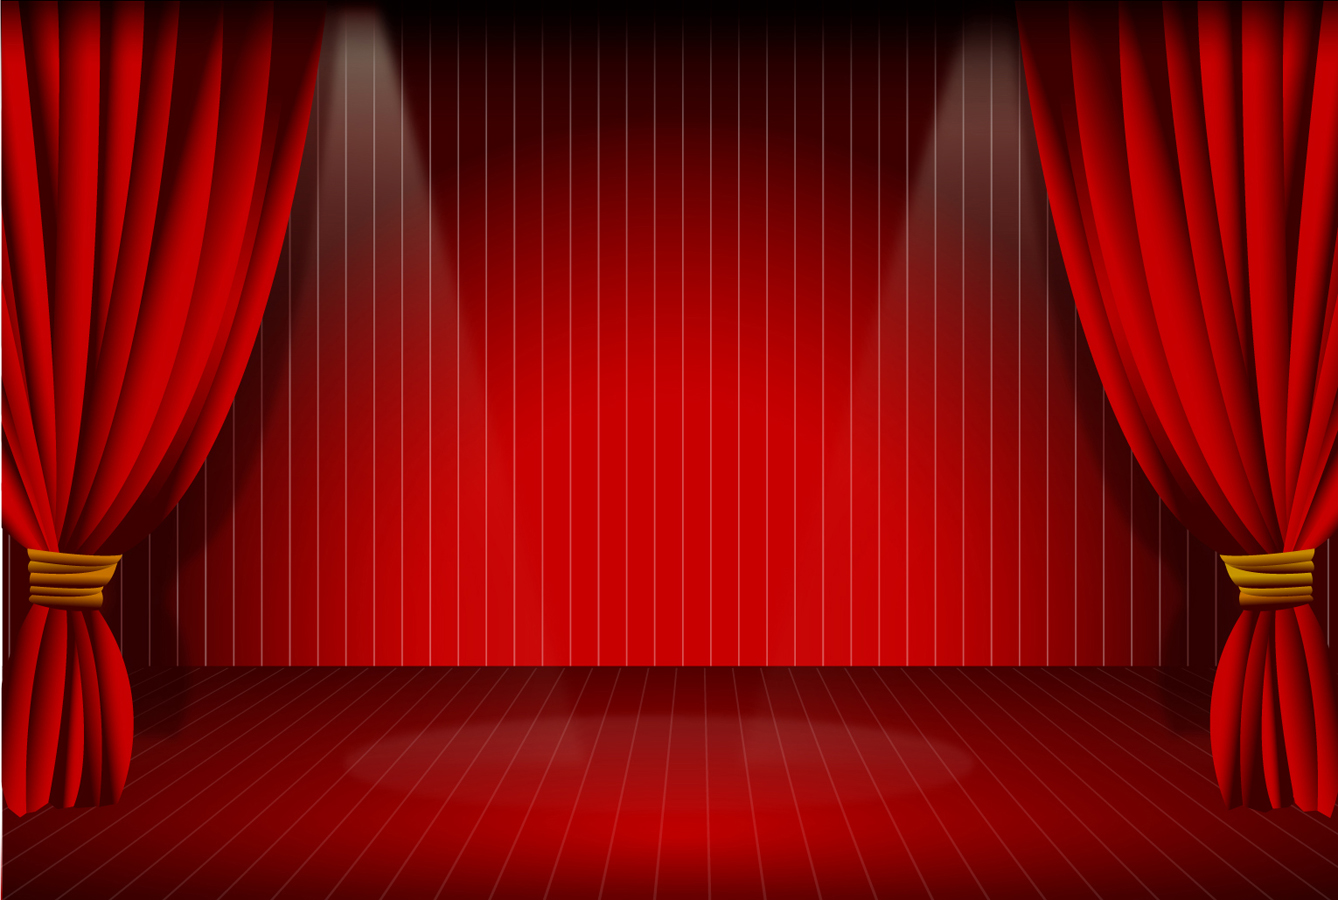 Curtain clipart real stage Stage free image clipart curtain